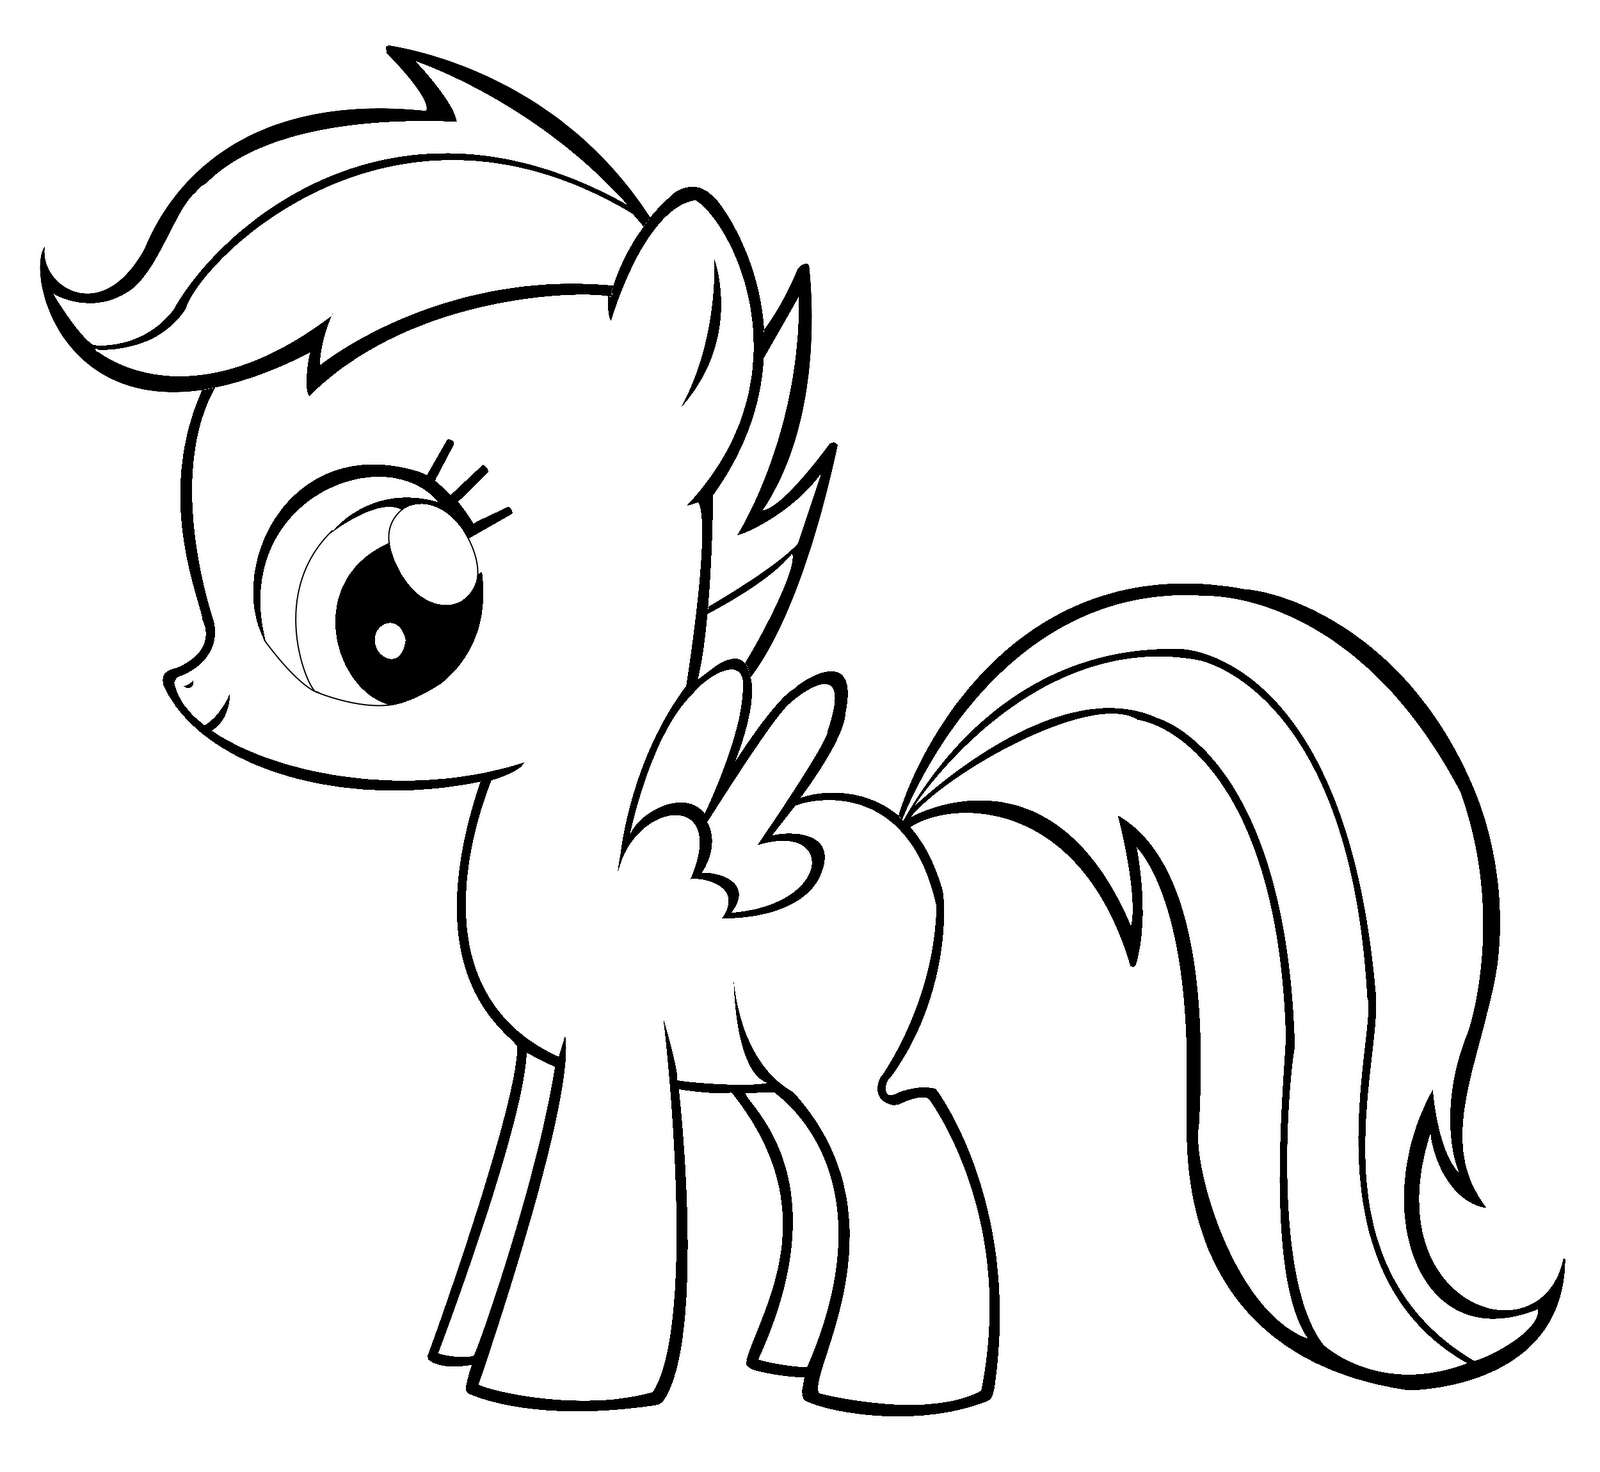 My little pony coloring pages scootaloo pony ~ Coloring Fun!: Applebloom & Scootaloo